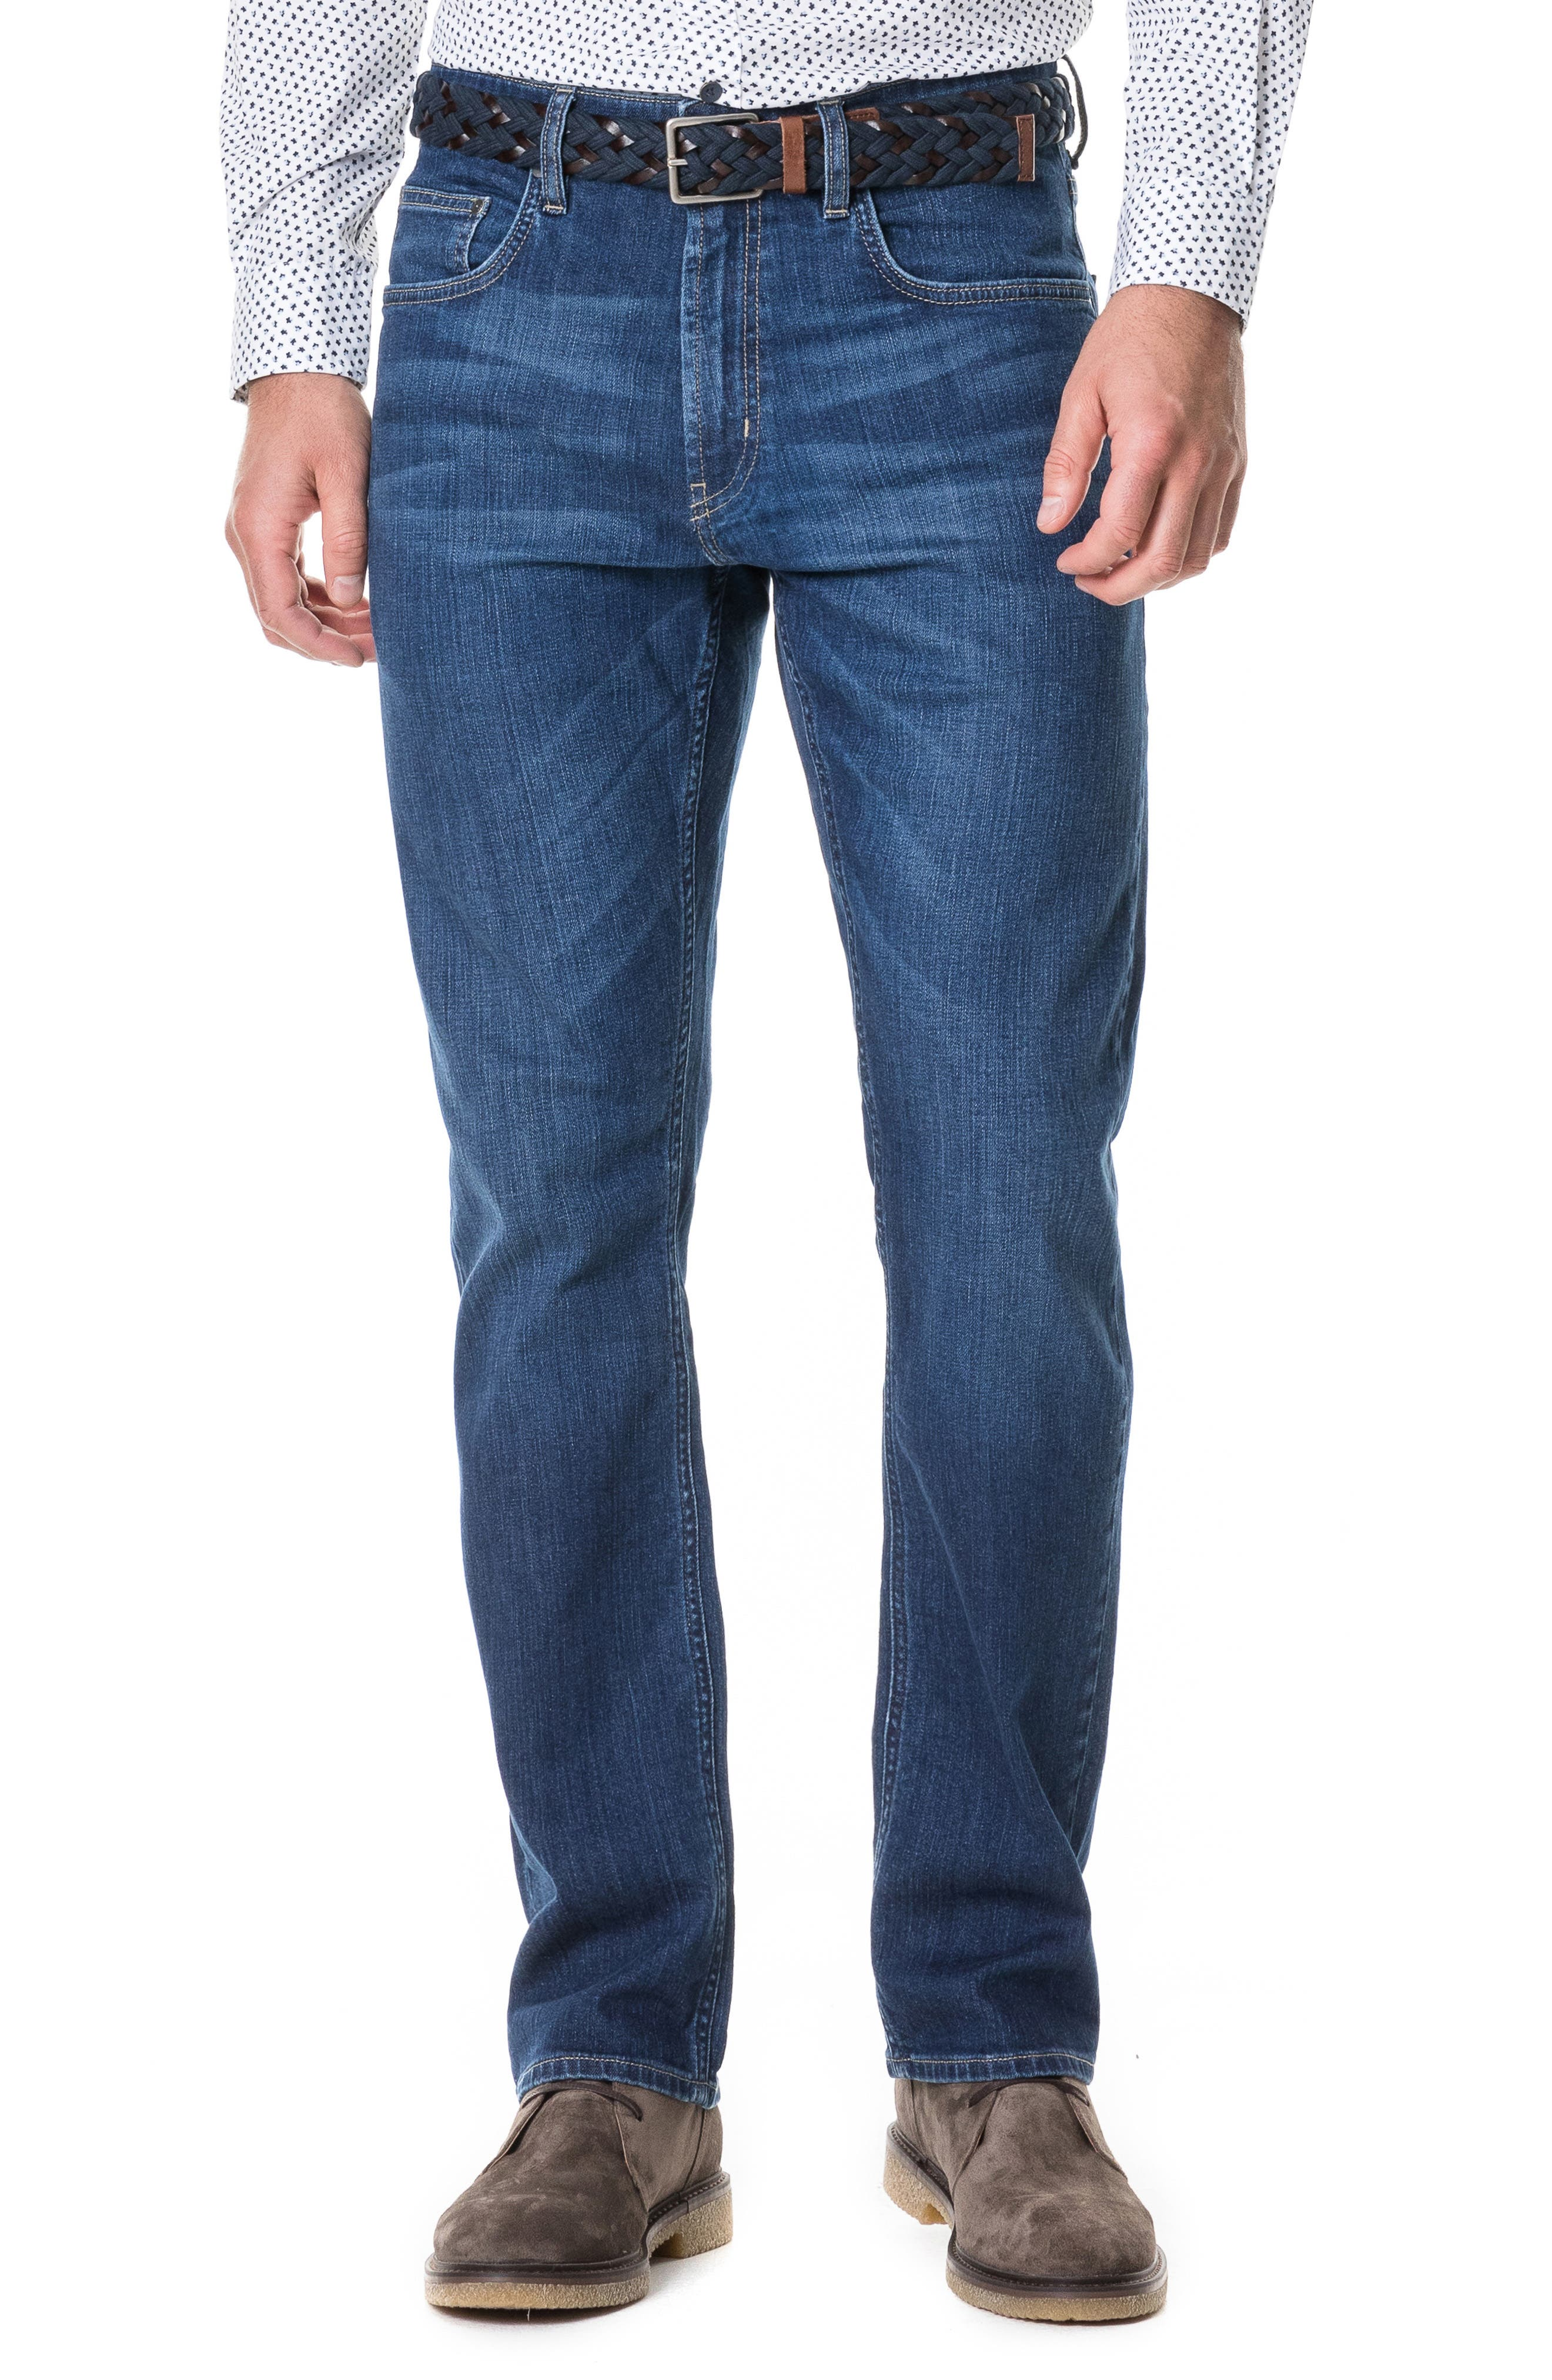 Byron Relaxed Fit Jeans,                             Main thumbnail 1, color,                             DENIM